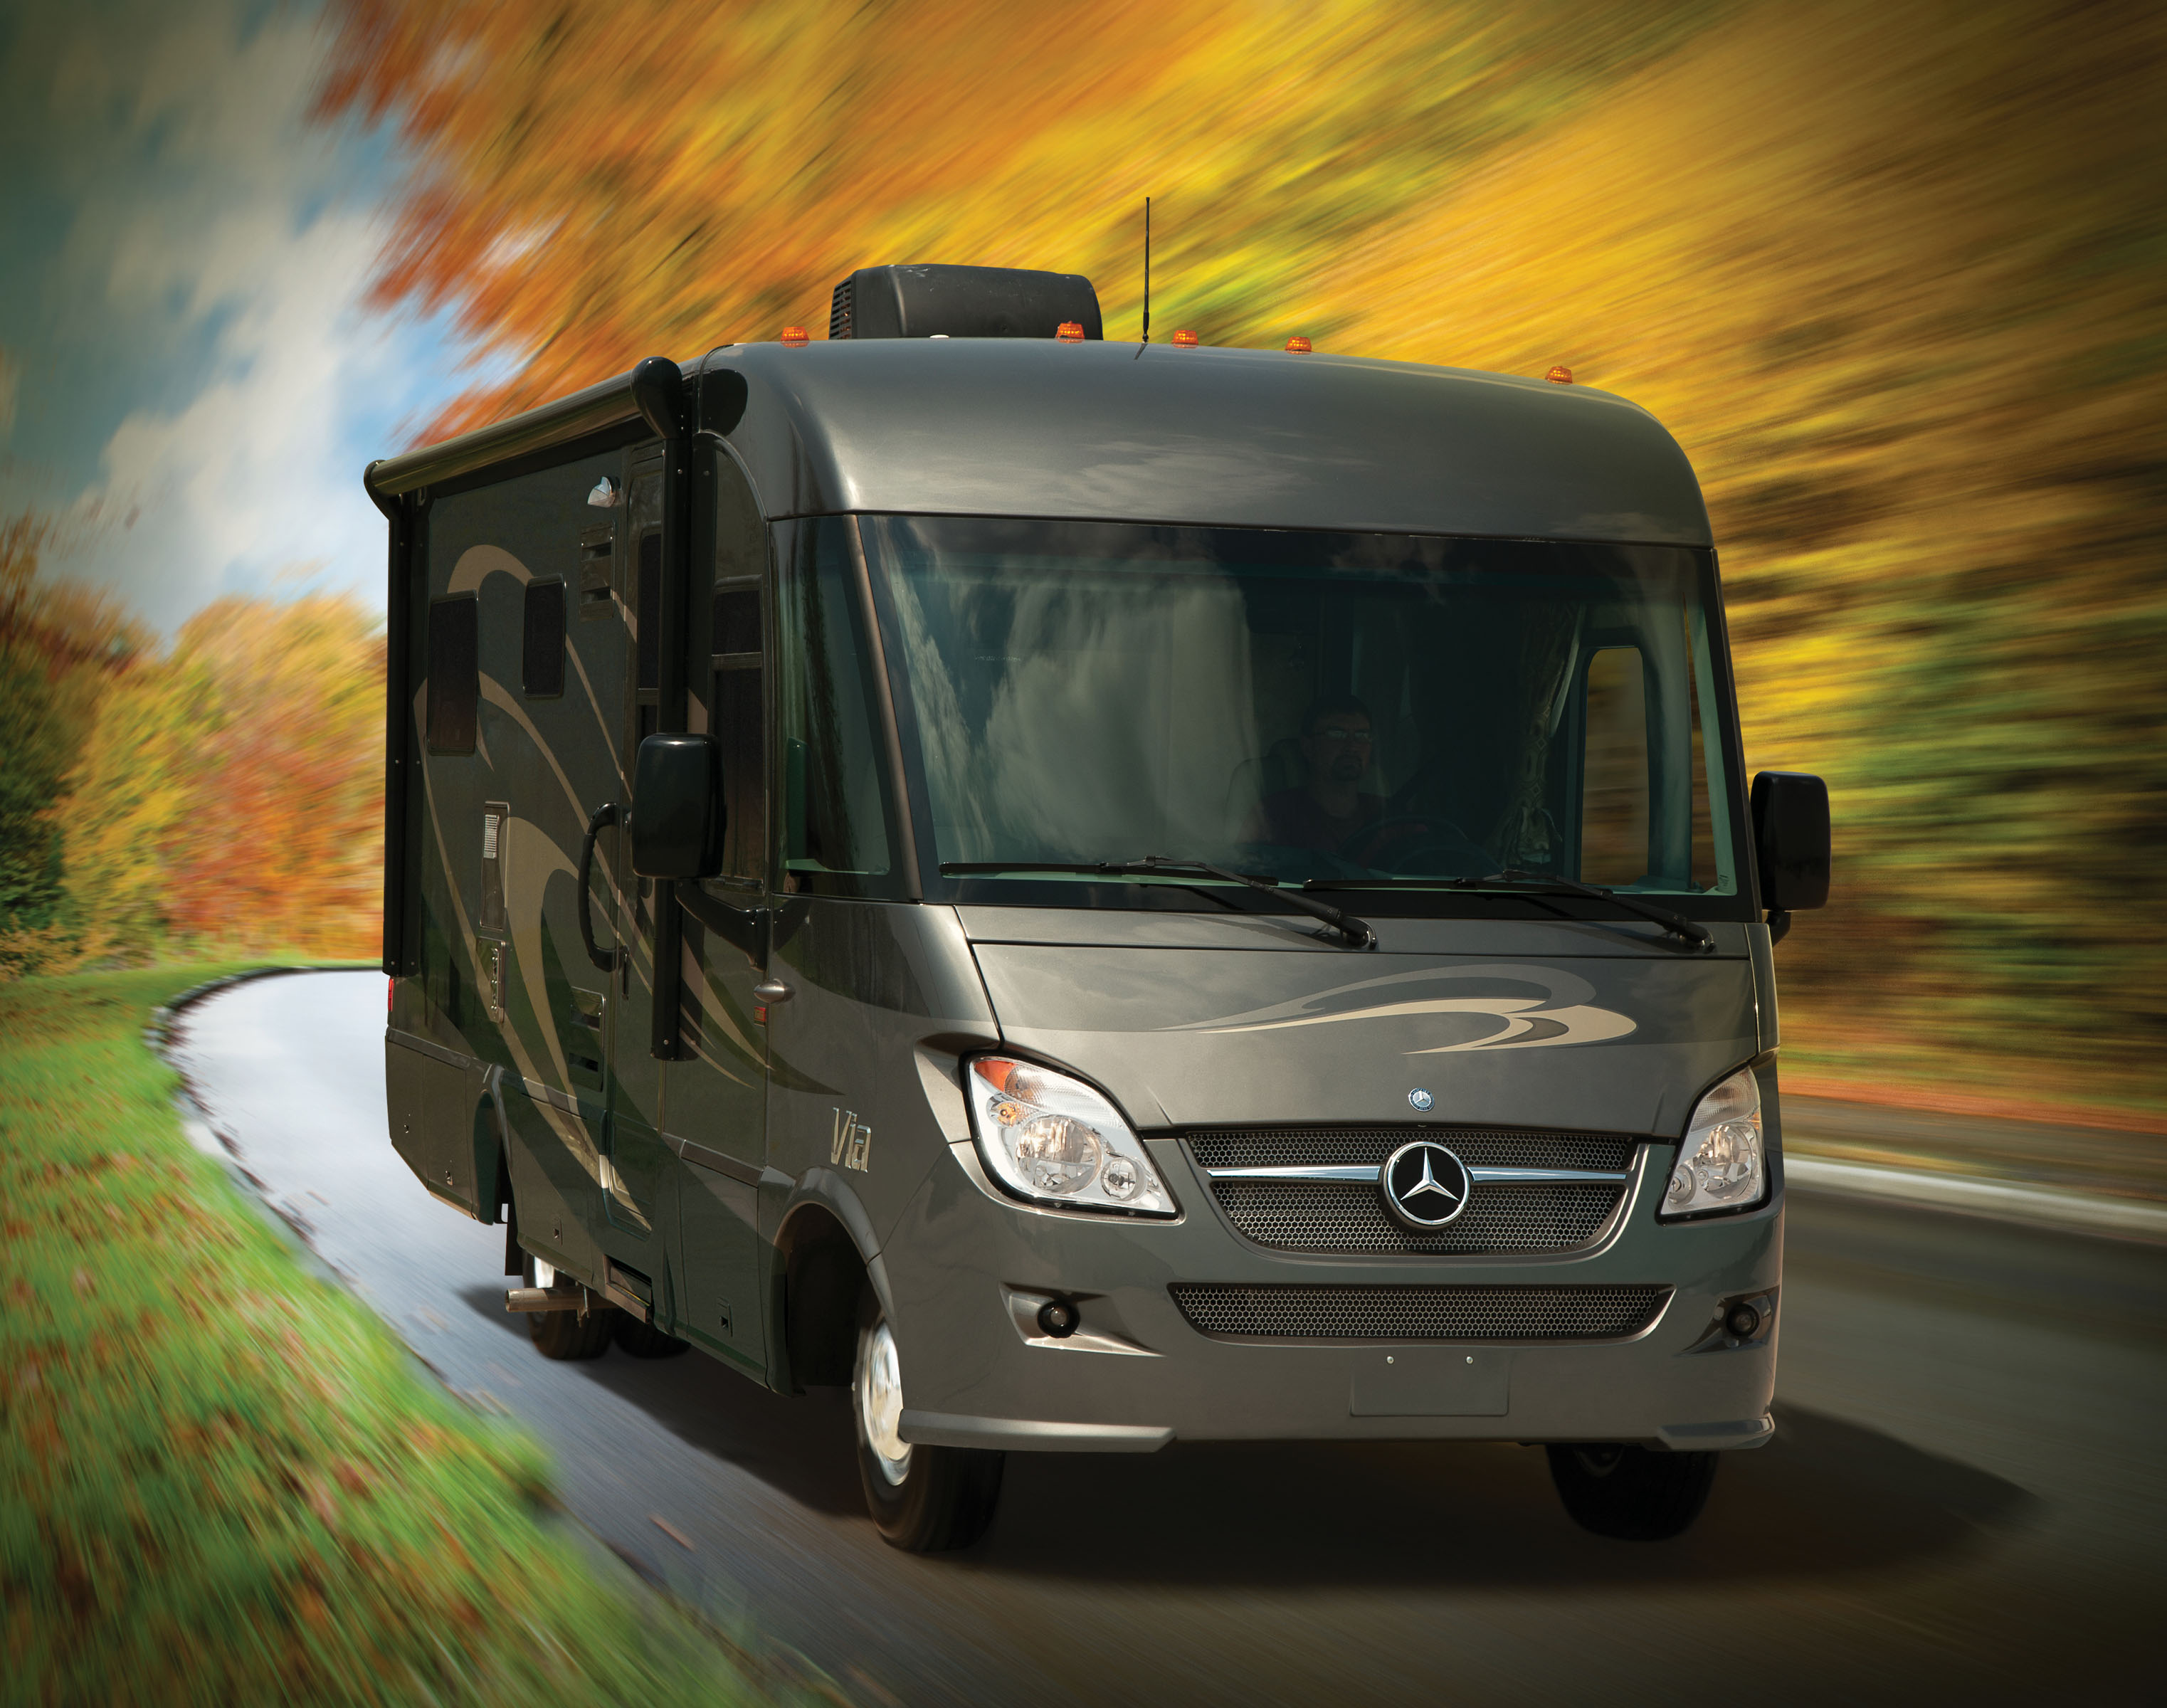 RV's Offer Fun, Fuel Efficiency, Affordability and Flexibility